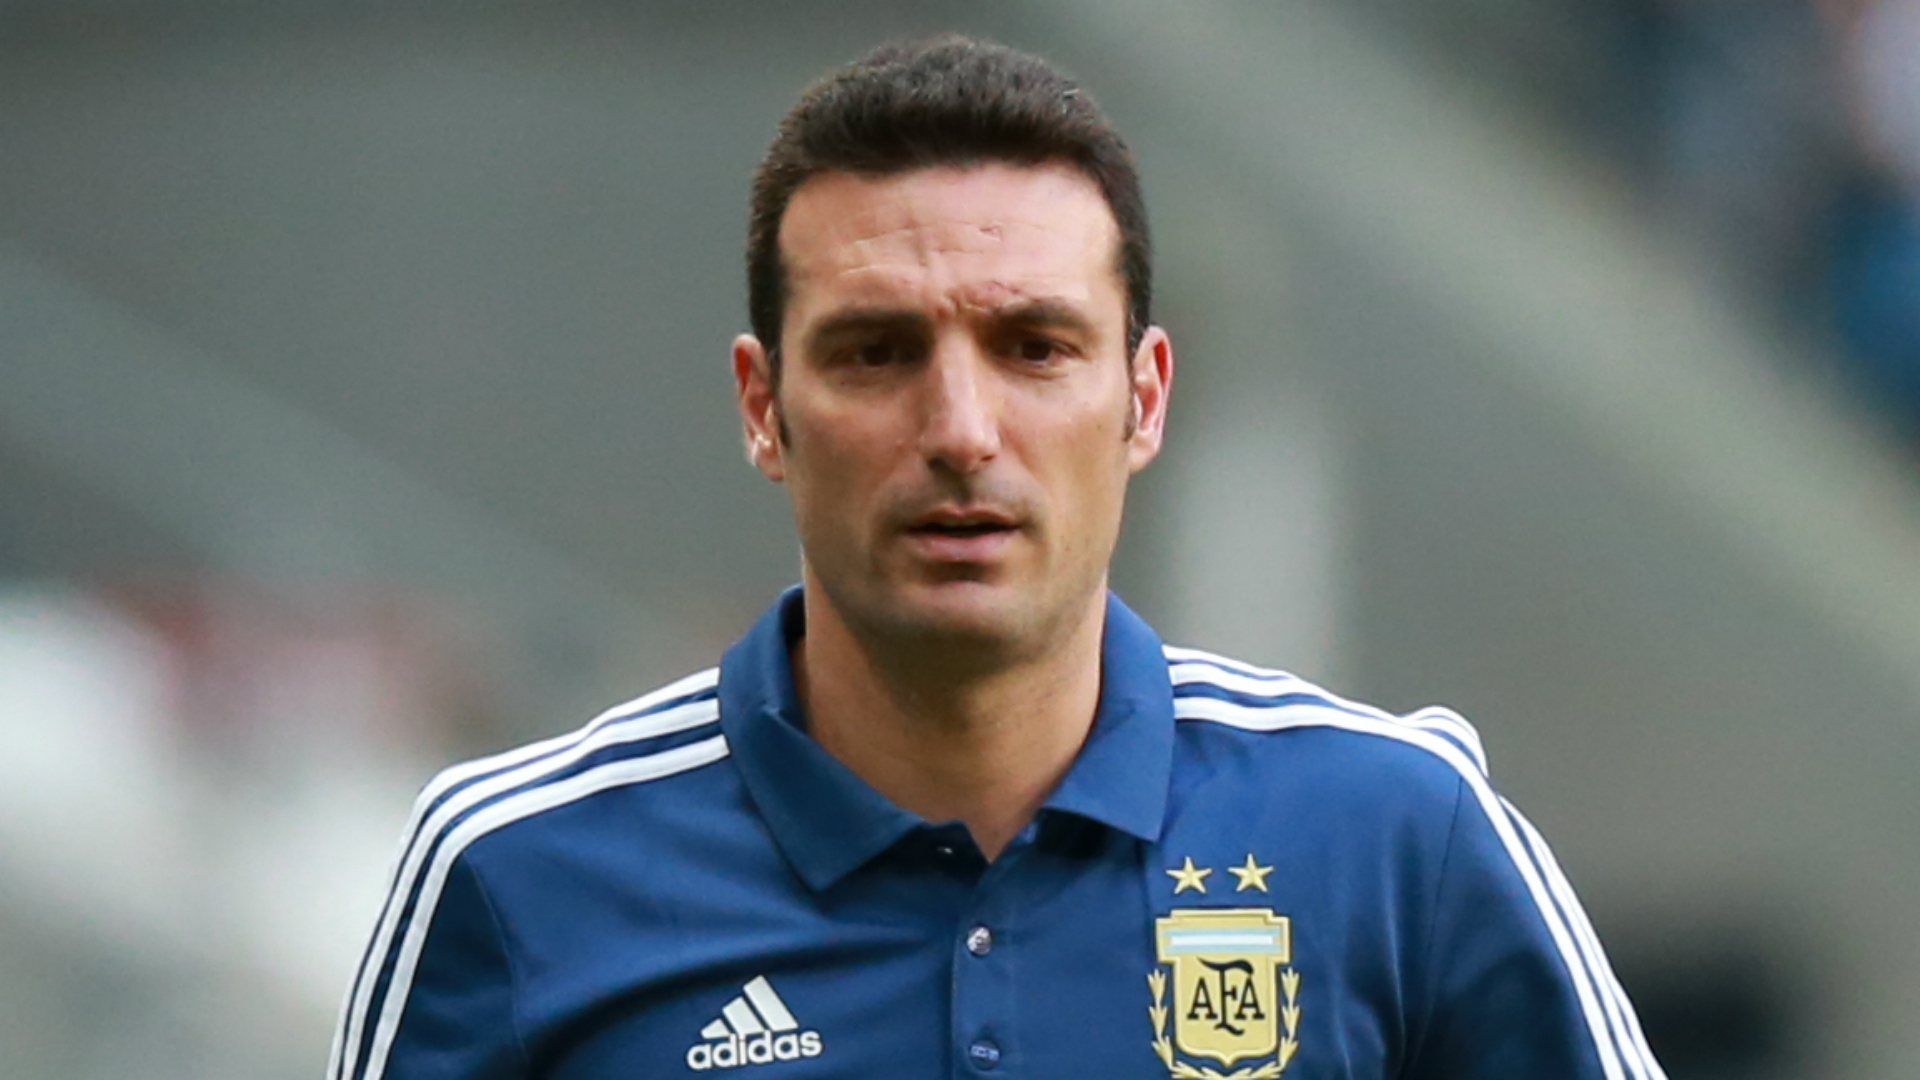 Argentina coach Scaloni says pressure his side are under leaves them having to 'play a war'